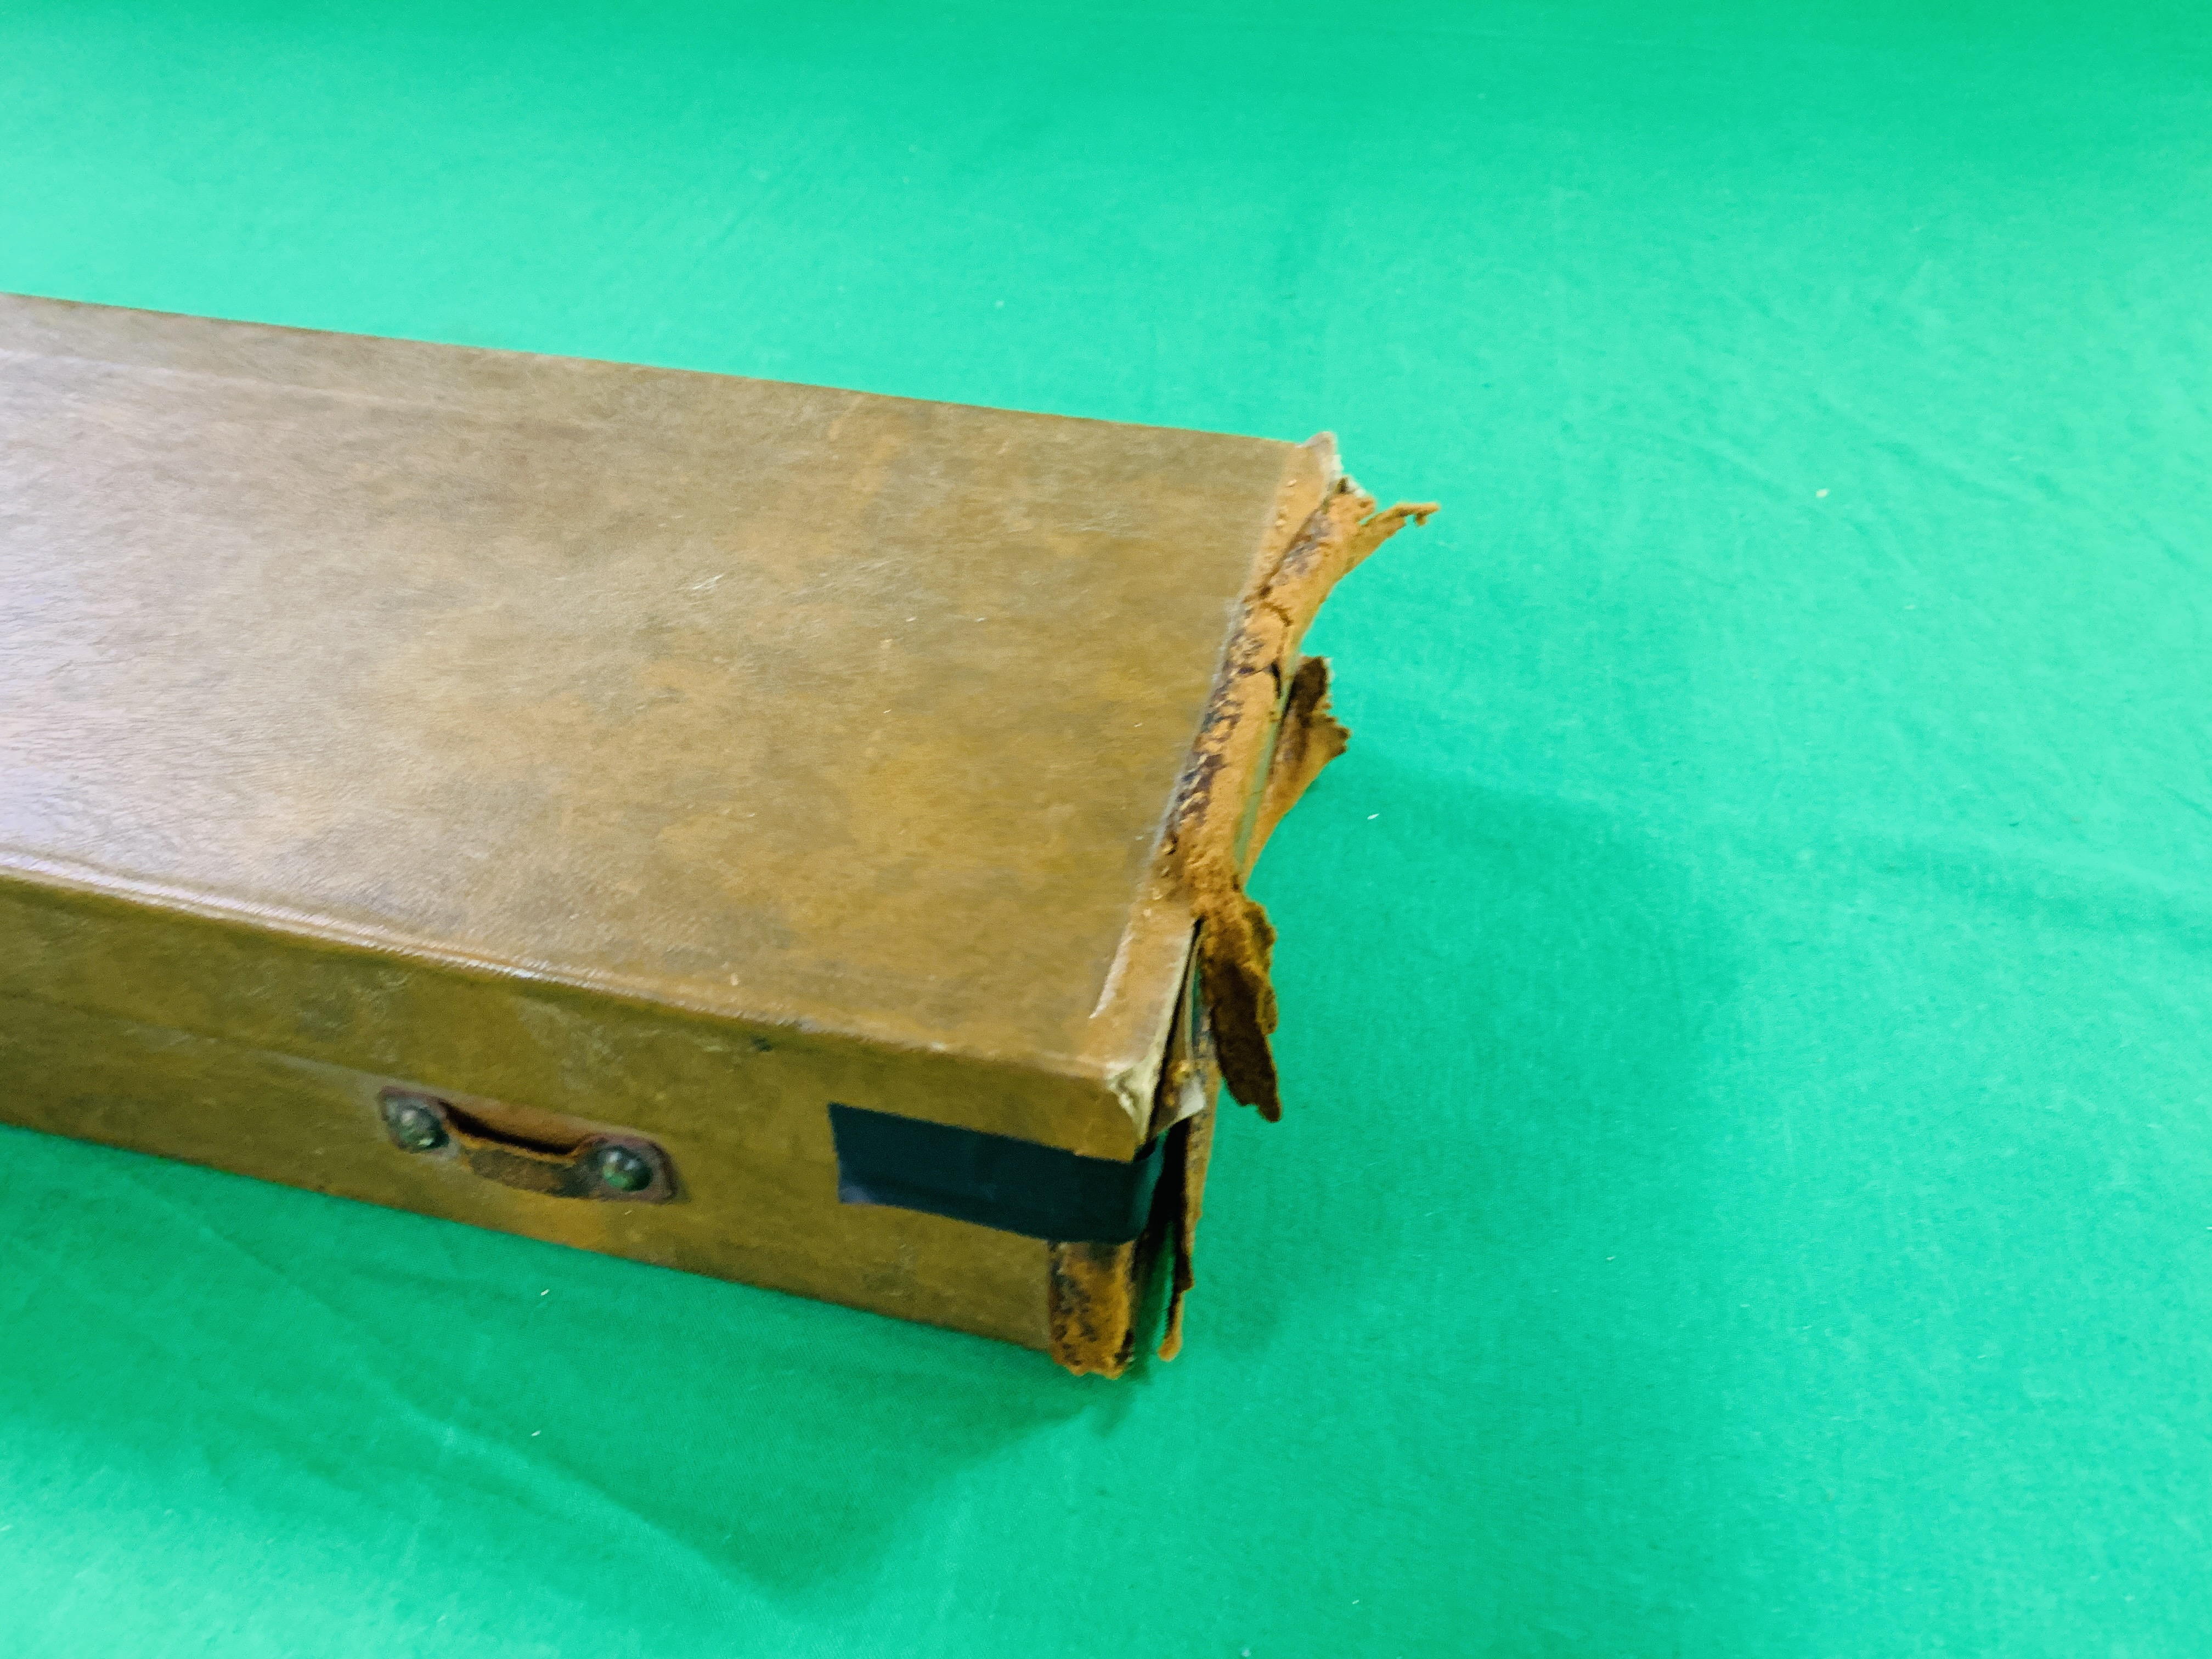 """LEATHERETTE 28 / 30"""" CASE WITH GALLYON OF KINGFISHER LABEL INSIDE - Image 10 of 11"""